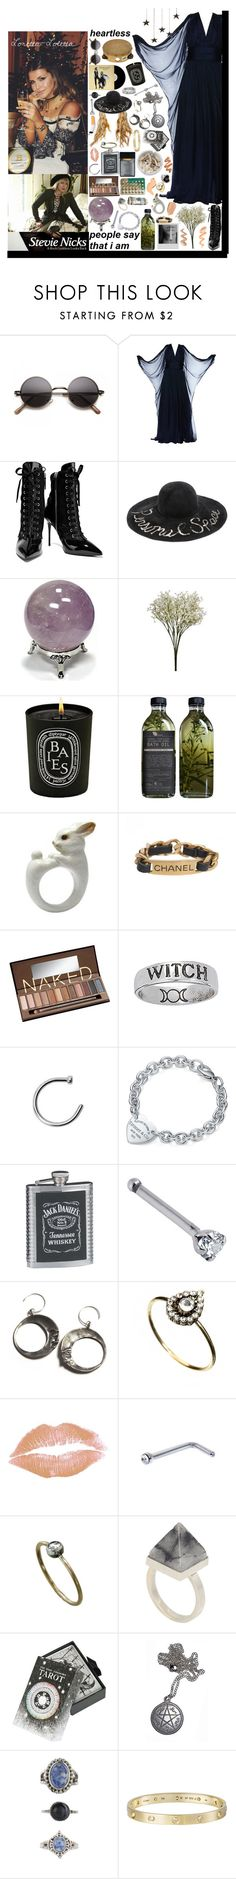 """Time cast a spell on me and you, you could've loved me if you wanted to. But nobody else will wrap you in their dreams like I do. ❤"" by loretta-mccoy ❤ liked on Polyvore featuring Giuseppe Zanotti, Eugenia Kim, Diptyque, Chanel, ZIG-ZAG, Urban Decay, Tiffany & Co., ileava, Orelia and Ash"